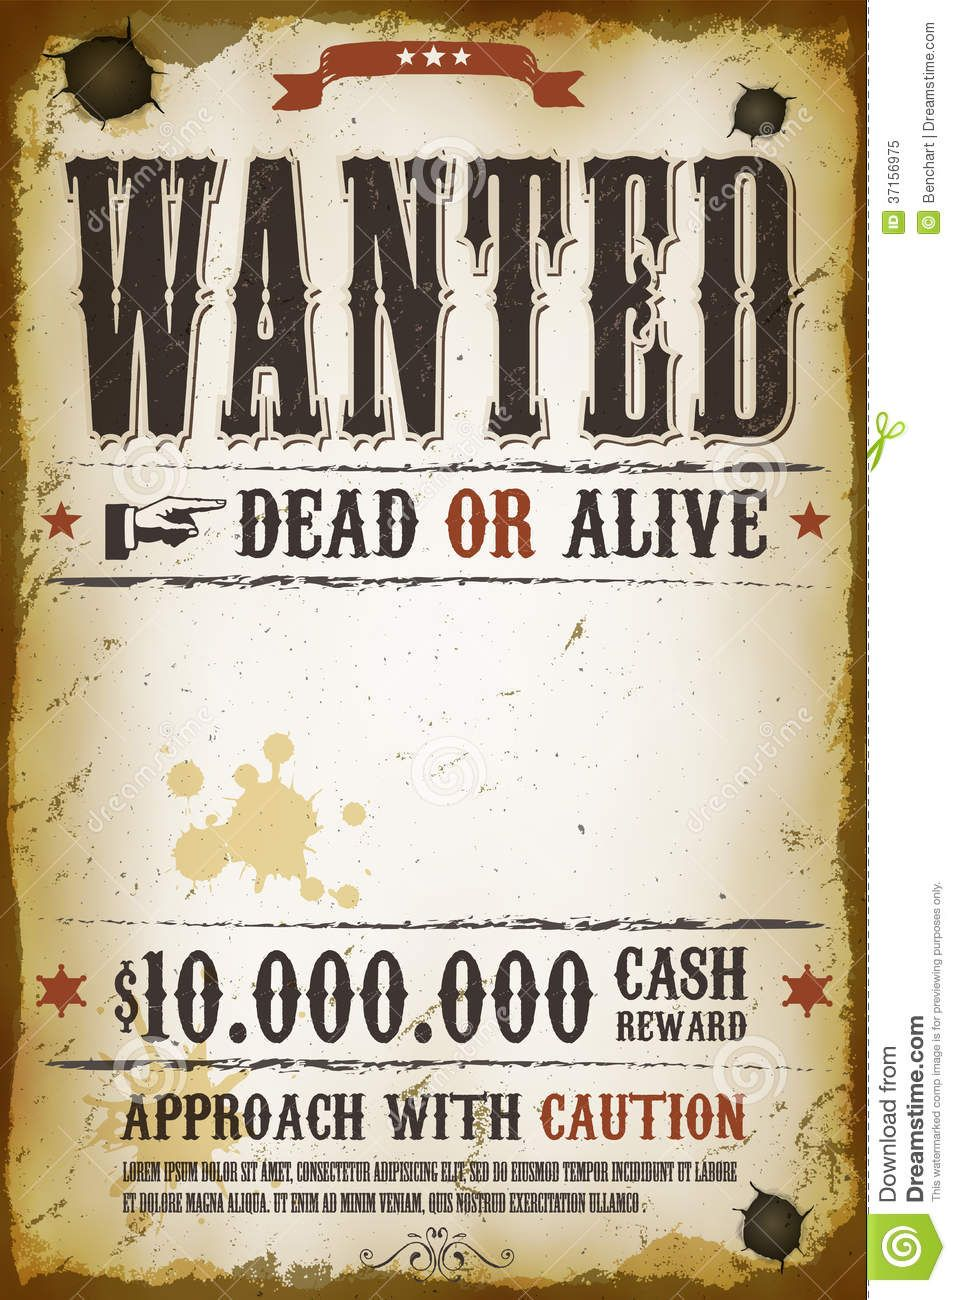 Most Wanted Poster Student Google Search School Library  F275fd8da9f4daf6a182a2e8c4ee768f 23292123049311106. Wanted Poster Template  Download  Free Wanted Poster Template Download